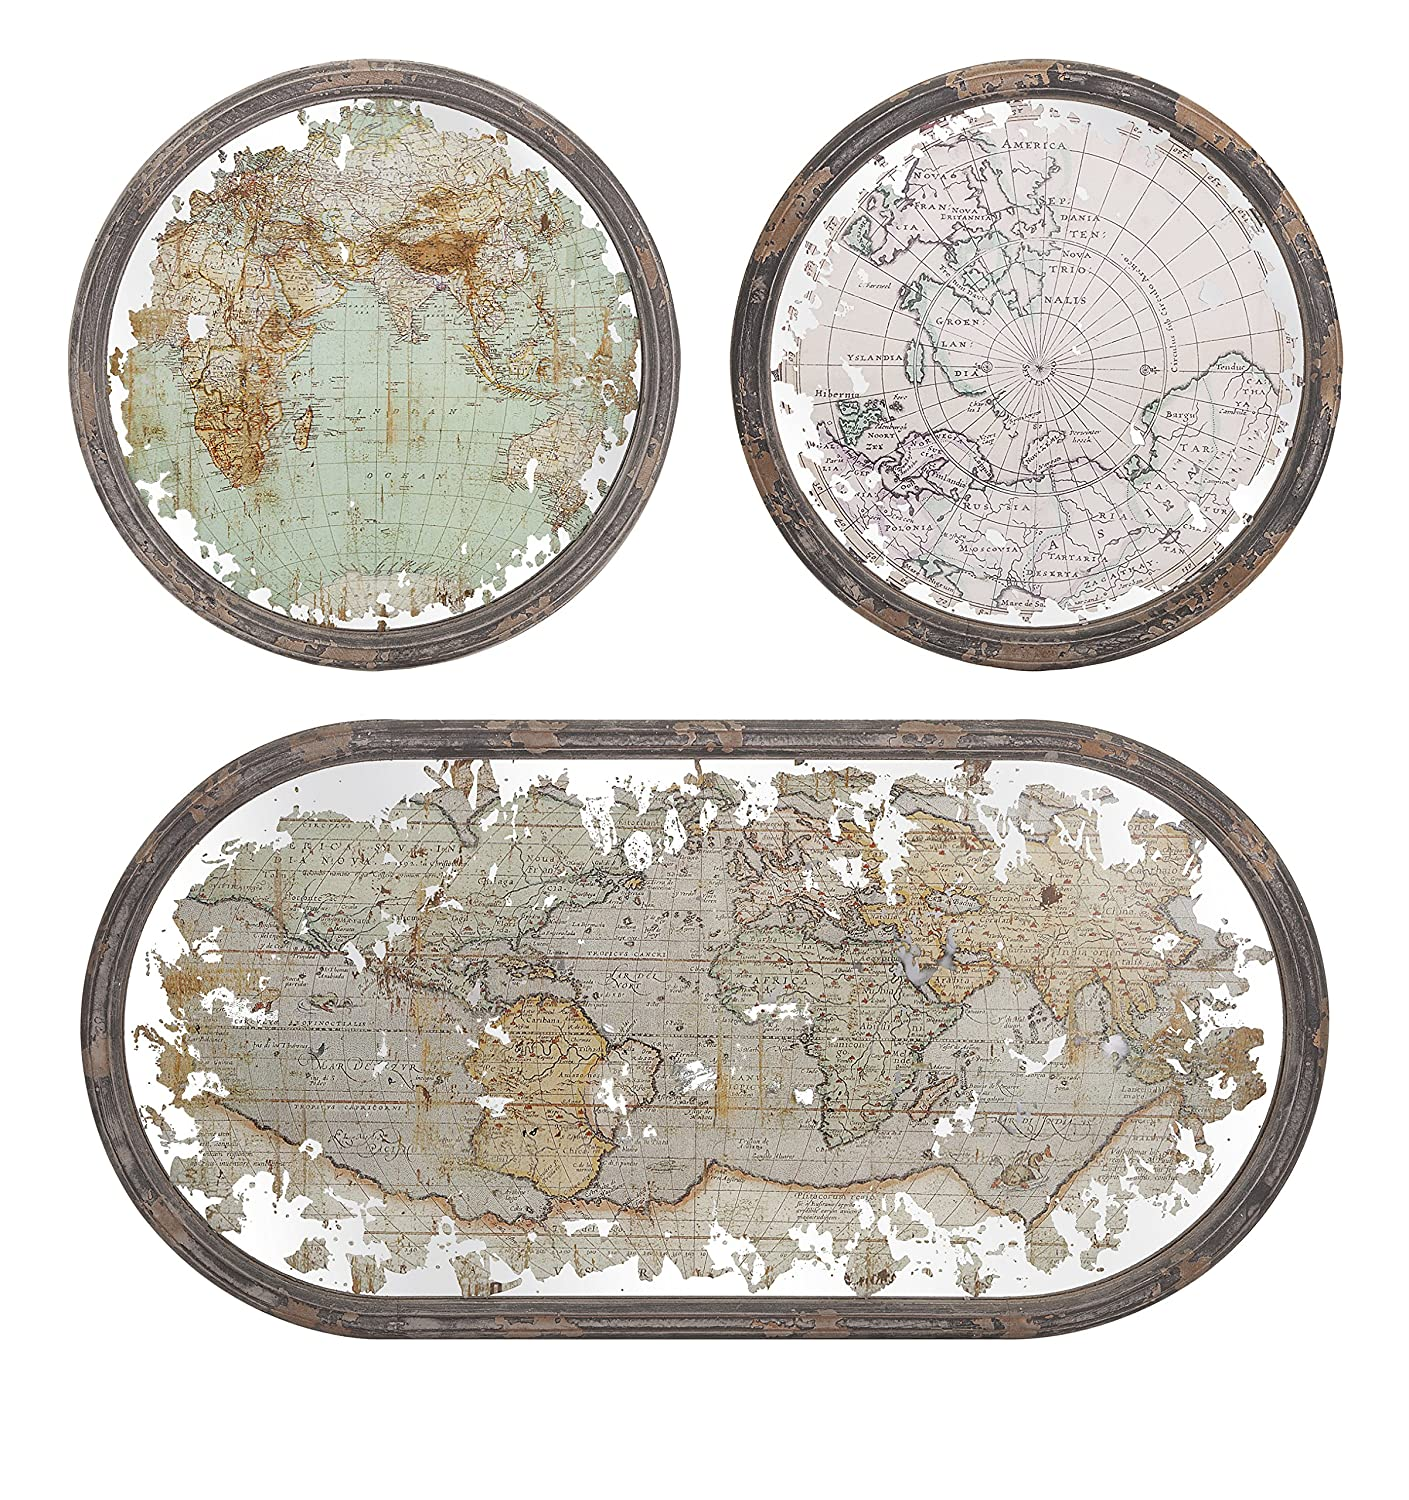 Amazon.com: IMAX 65249 3 Mirrored Map Wall Decor, Set Of 3: Home U0026 Kitchen